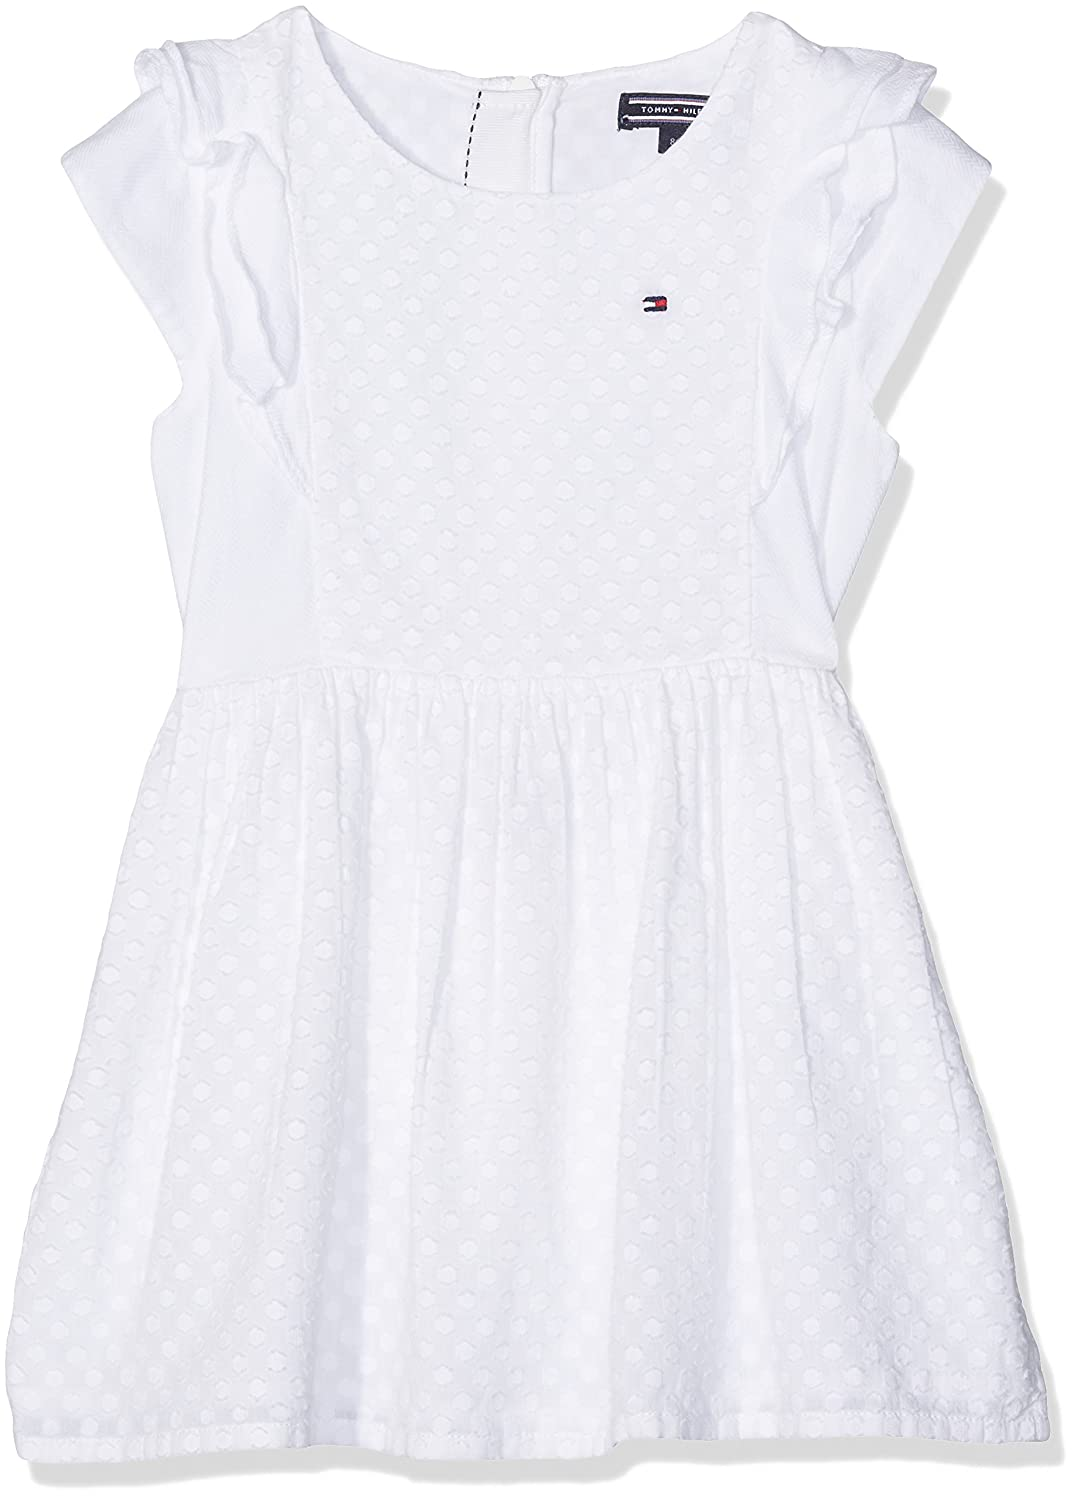 Tommy Hilfiger M Dobby Mix Dress S/S, Robe Fille